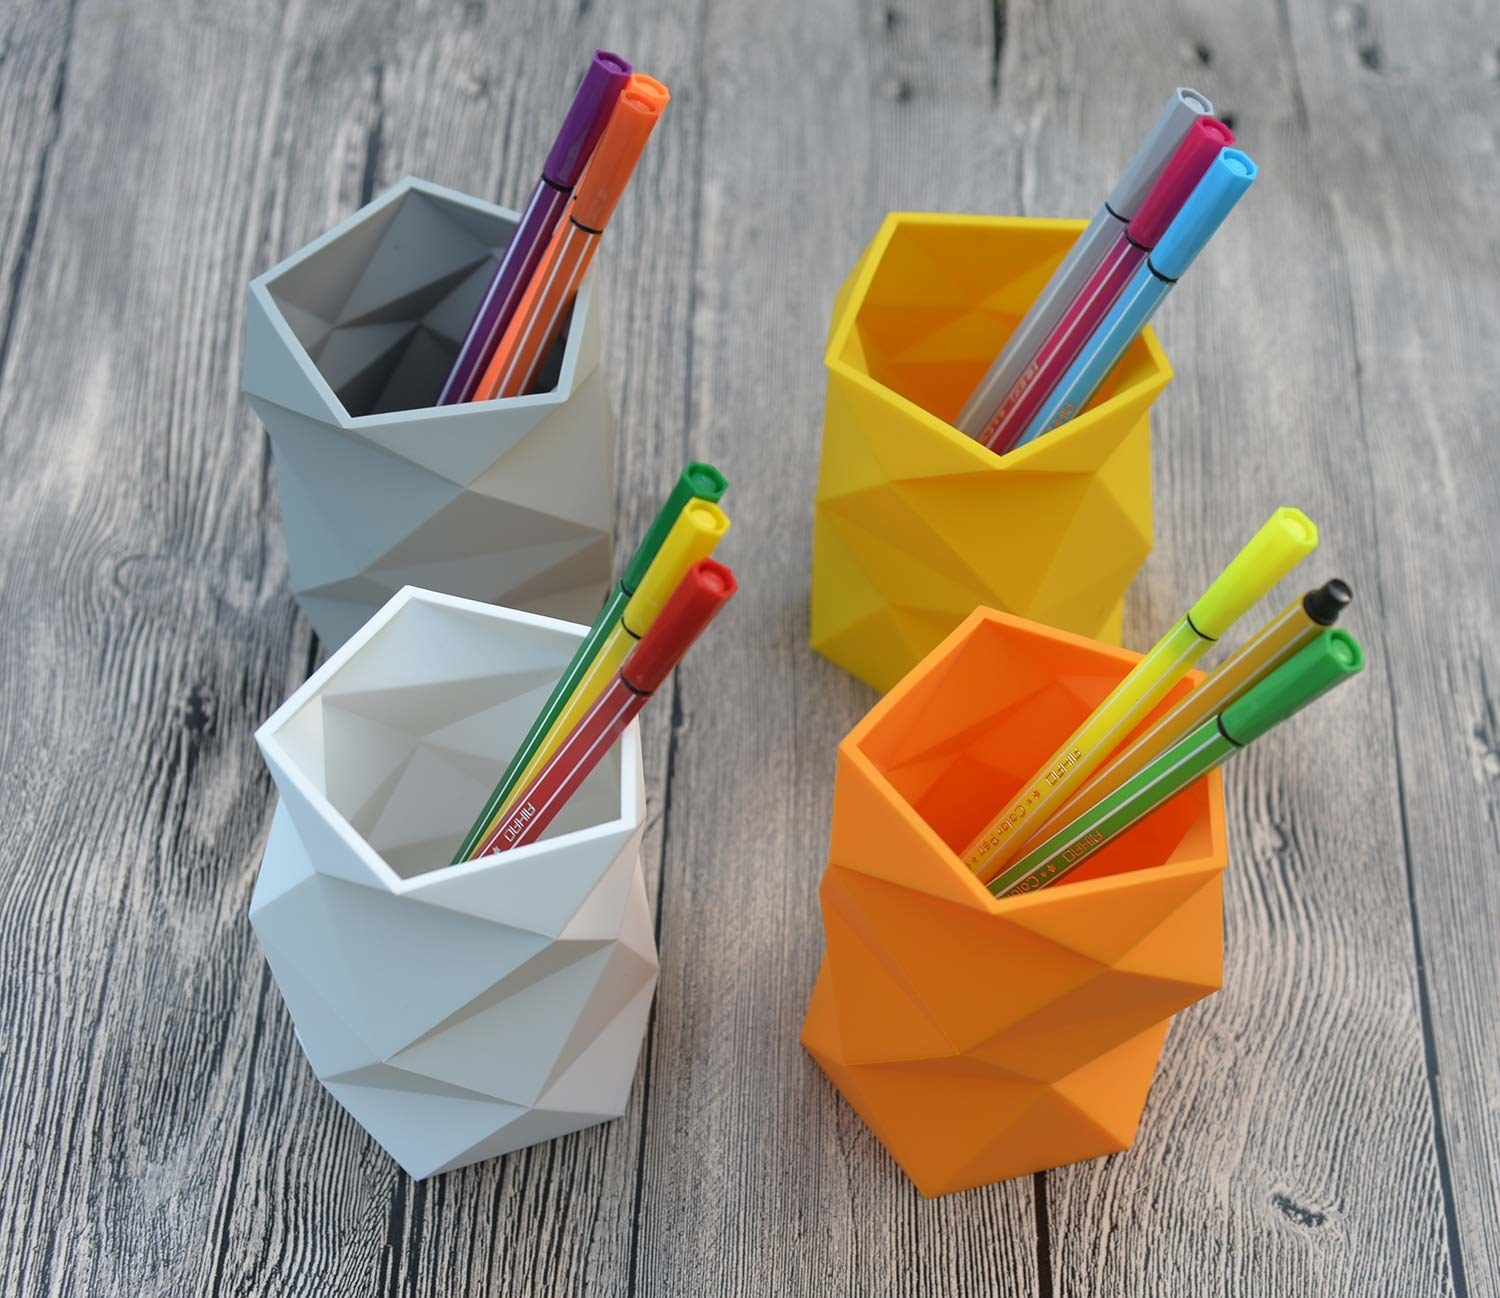 Geometric pencil containers in four shades